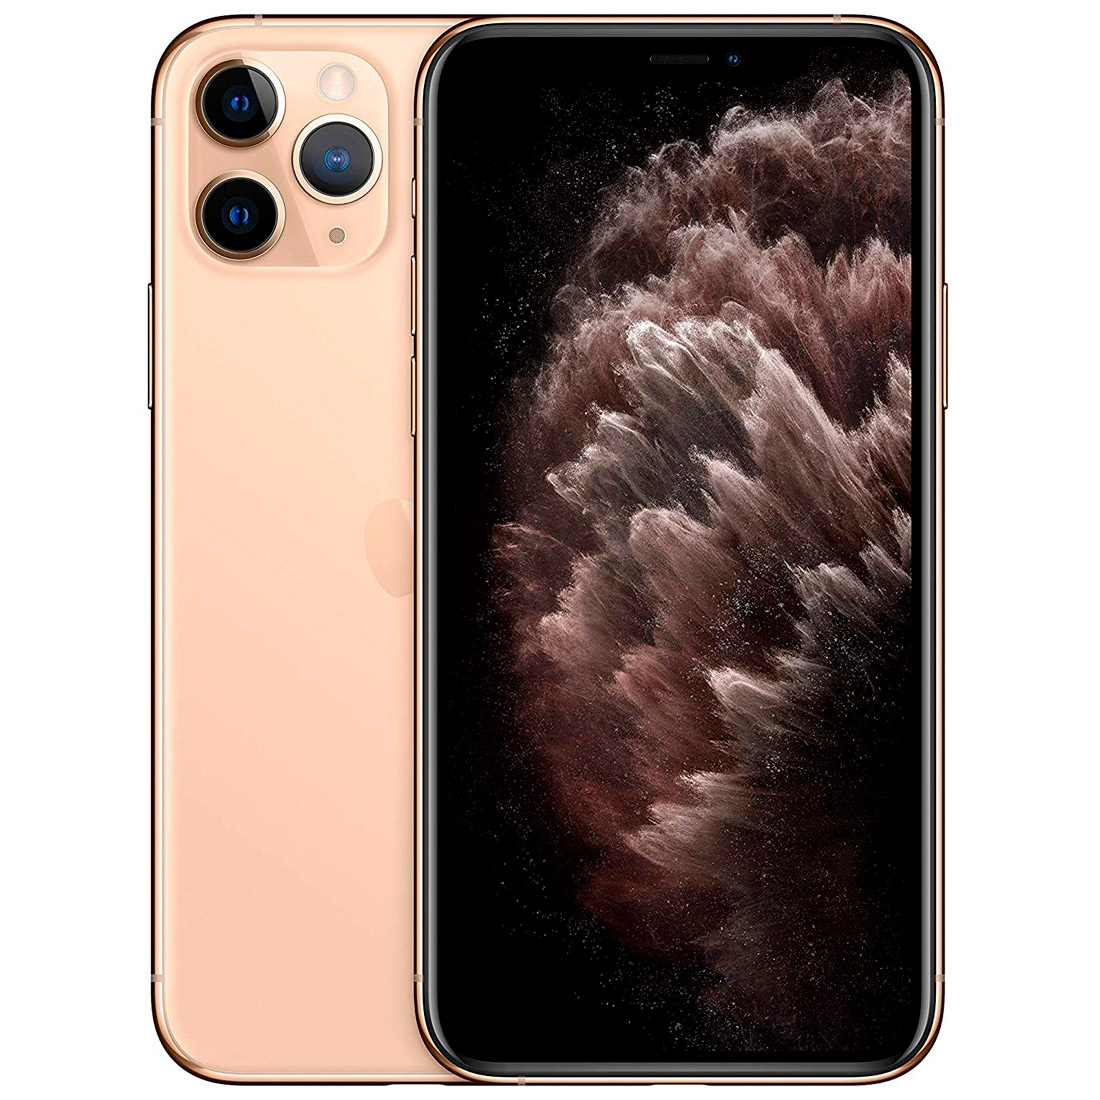 Smartphone iPhone 11 Pro Max 256GB Gold 6.5""